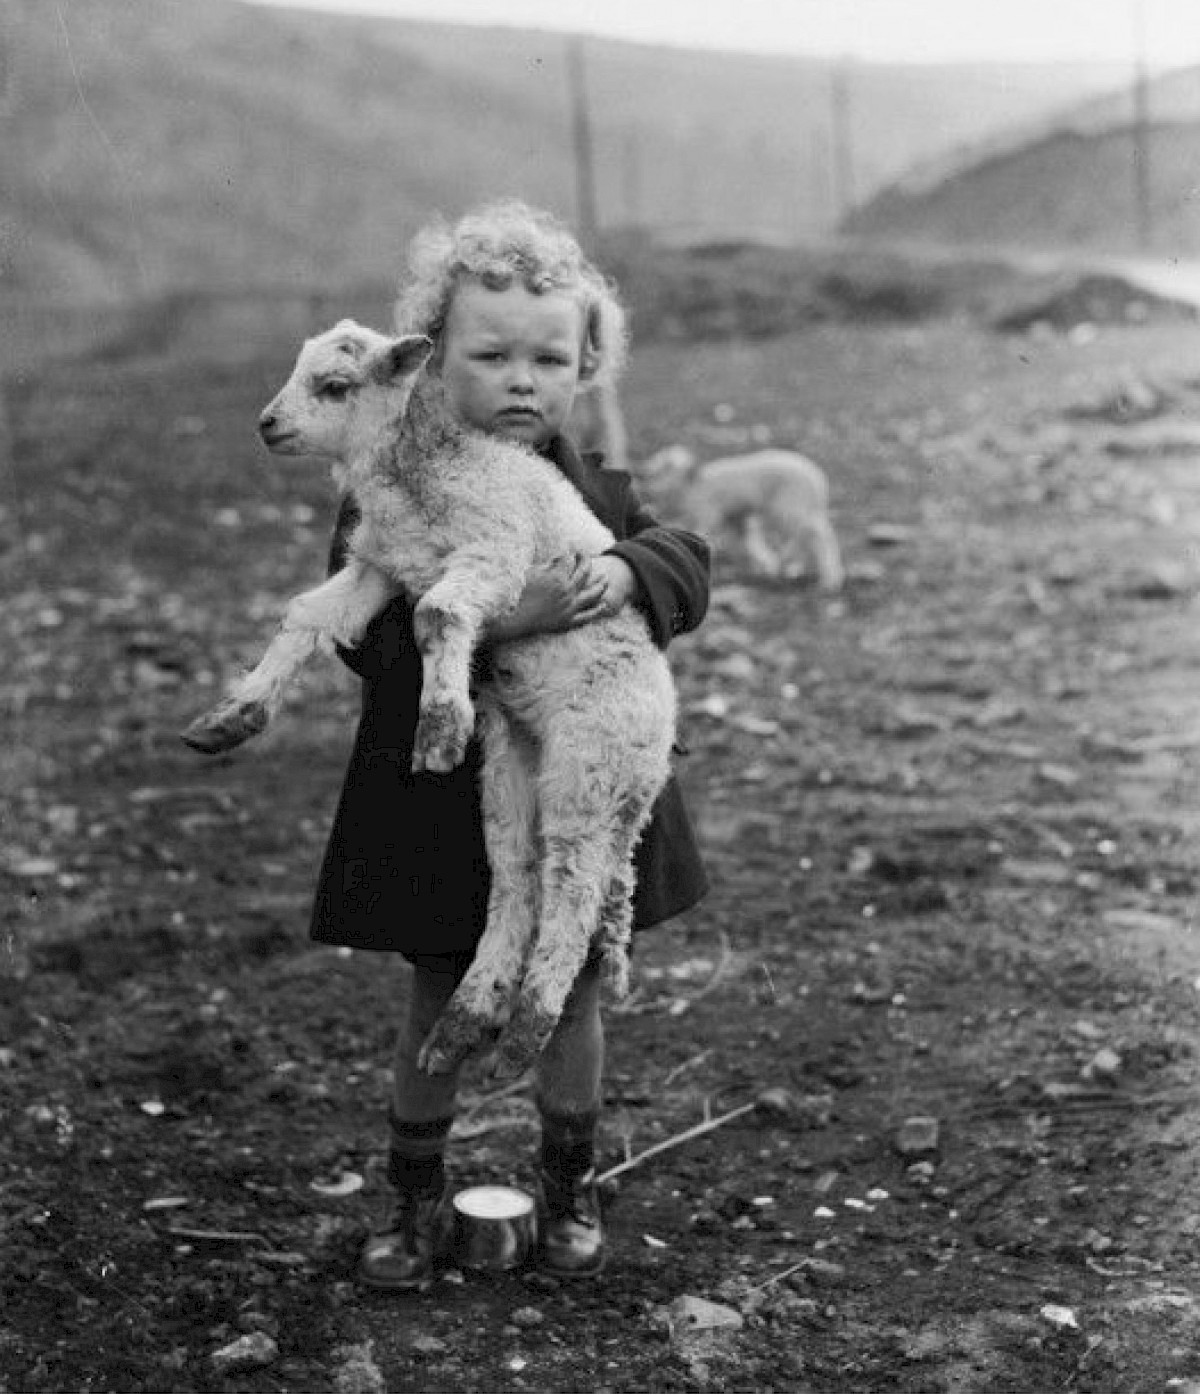 kid with sheep b&w fashion photography timeless inspo textures body timeless kate moss lindbergh newton avedon demarchelier meisel Alaia Chanel